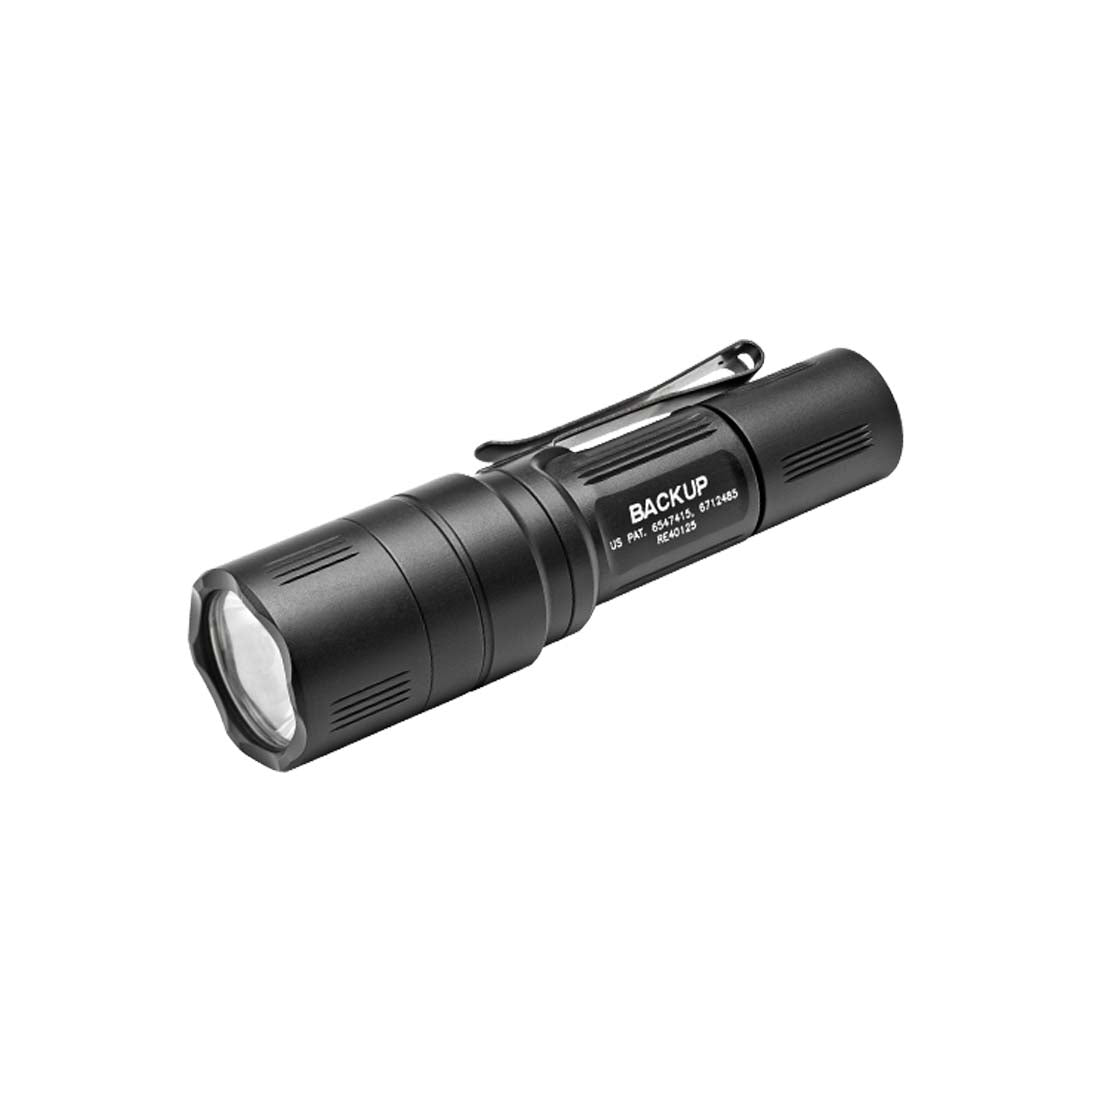 Surefire EB1 Backup Dual Output Led Flashlight